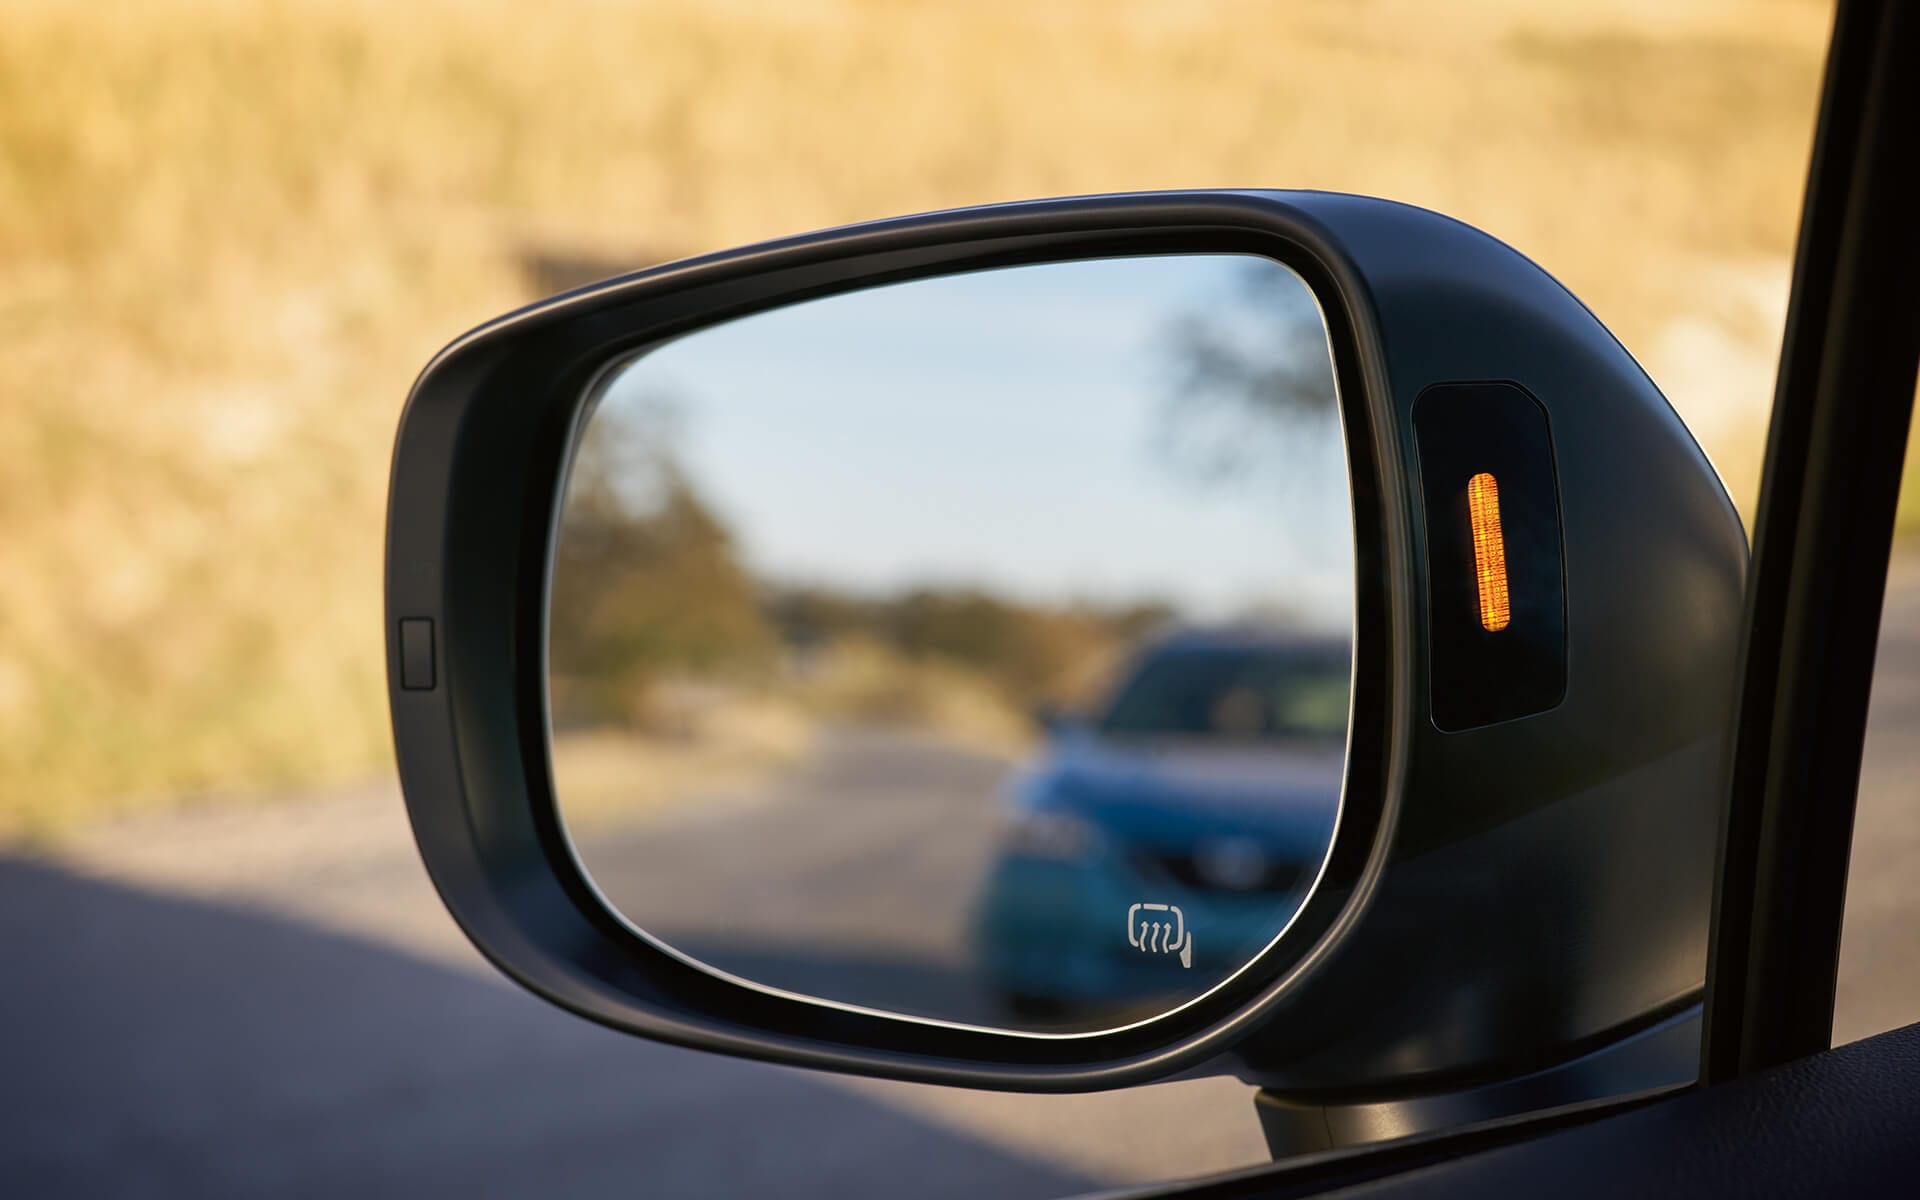 A close-up of a Blind-Spot Detection indicator light on the 2020 Crosstrek side mirror.